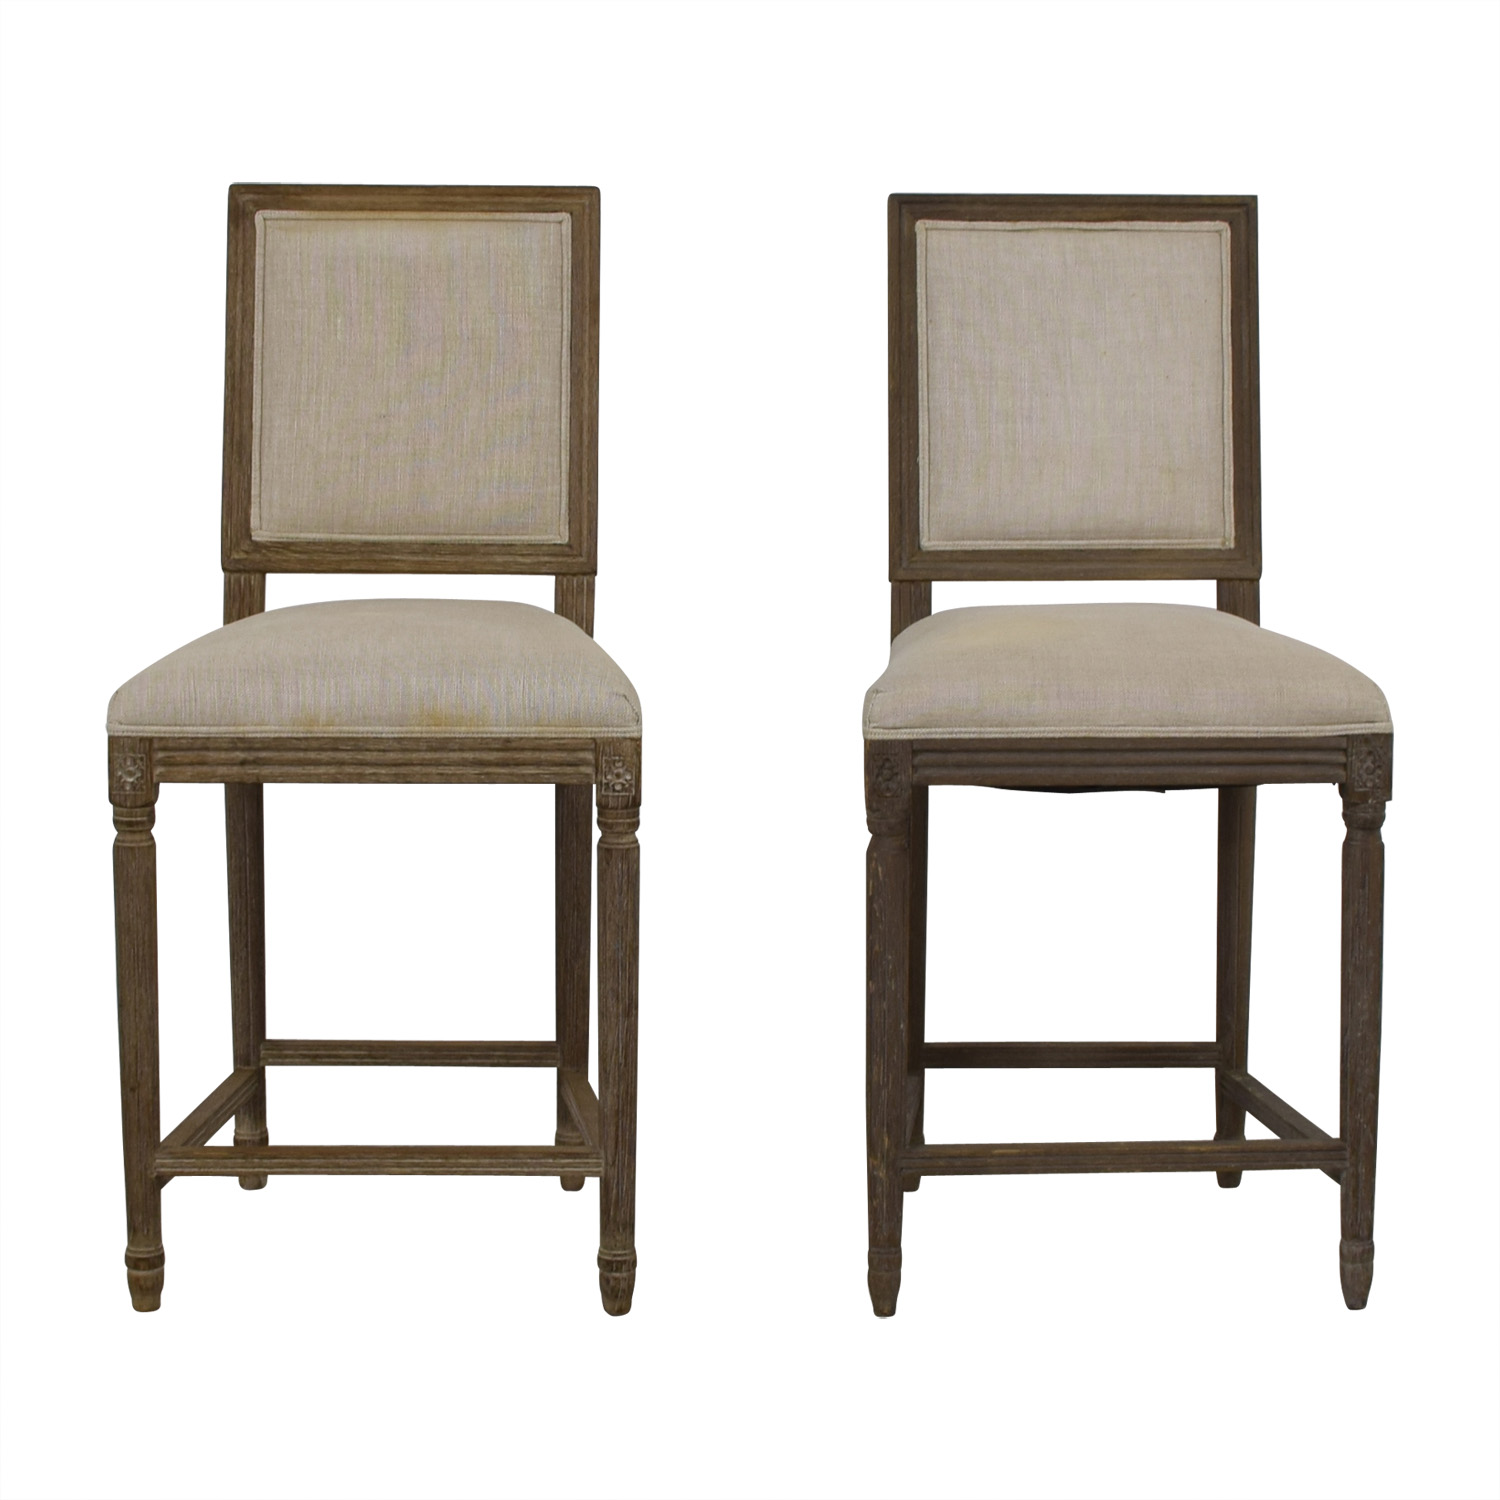 Restoration Hardware Restoration Hardware Vintage French Square Counter Stools on sale